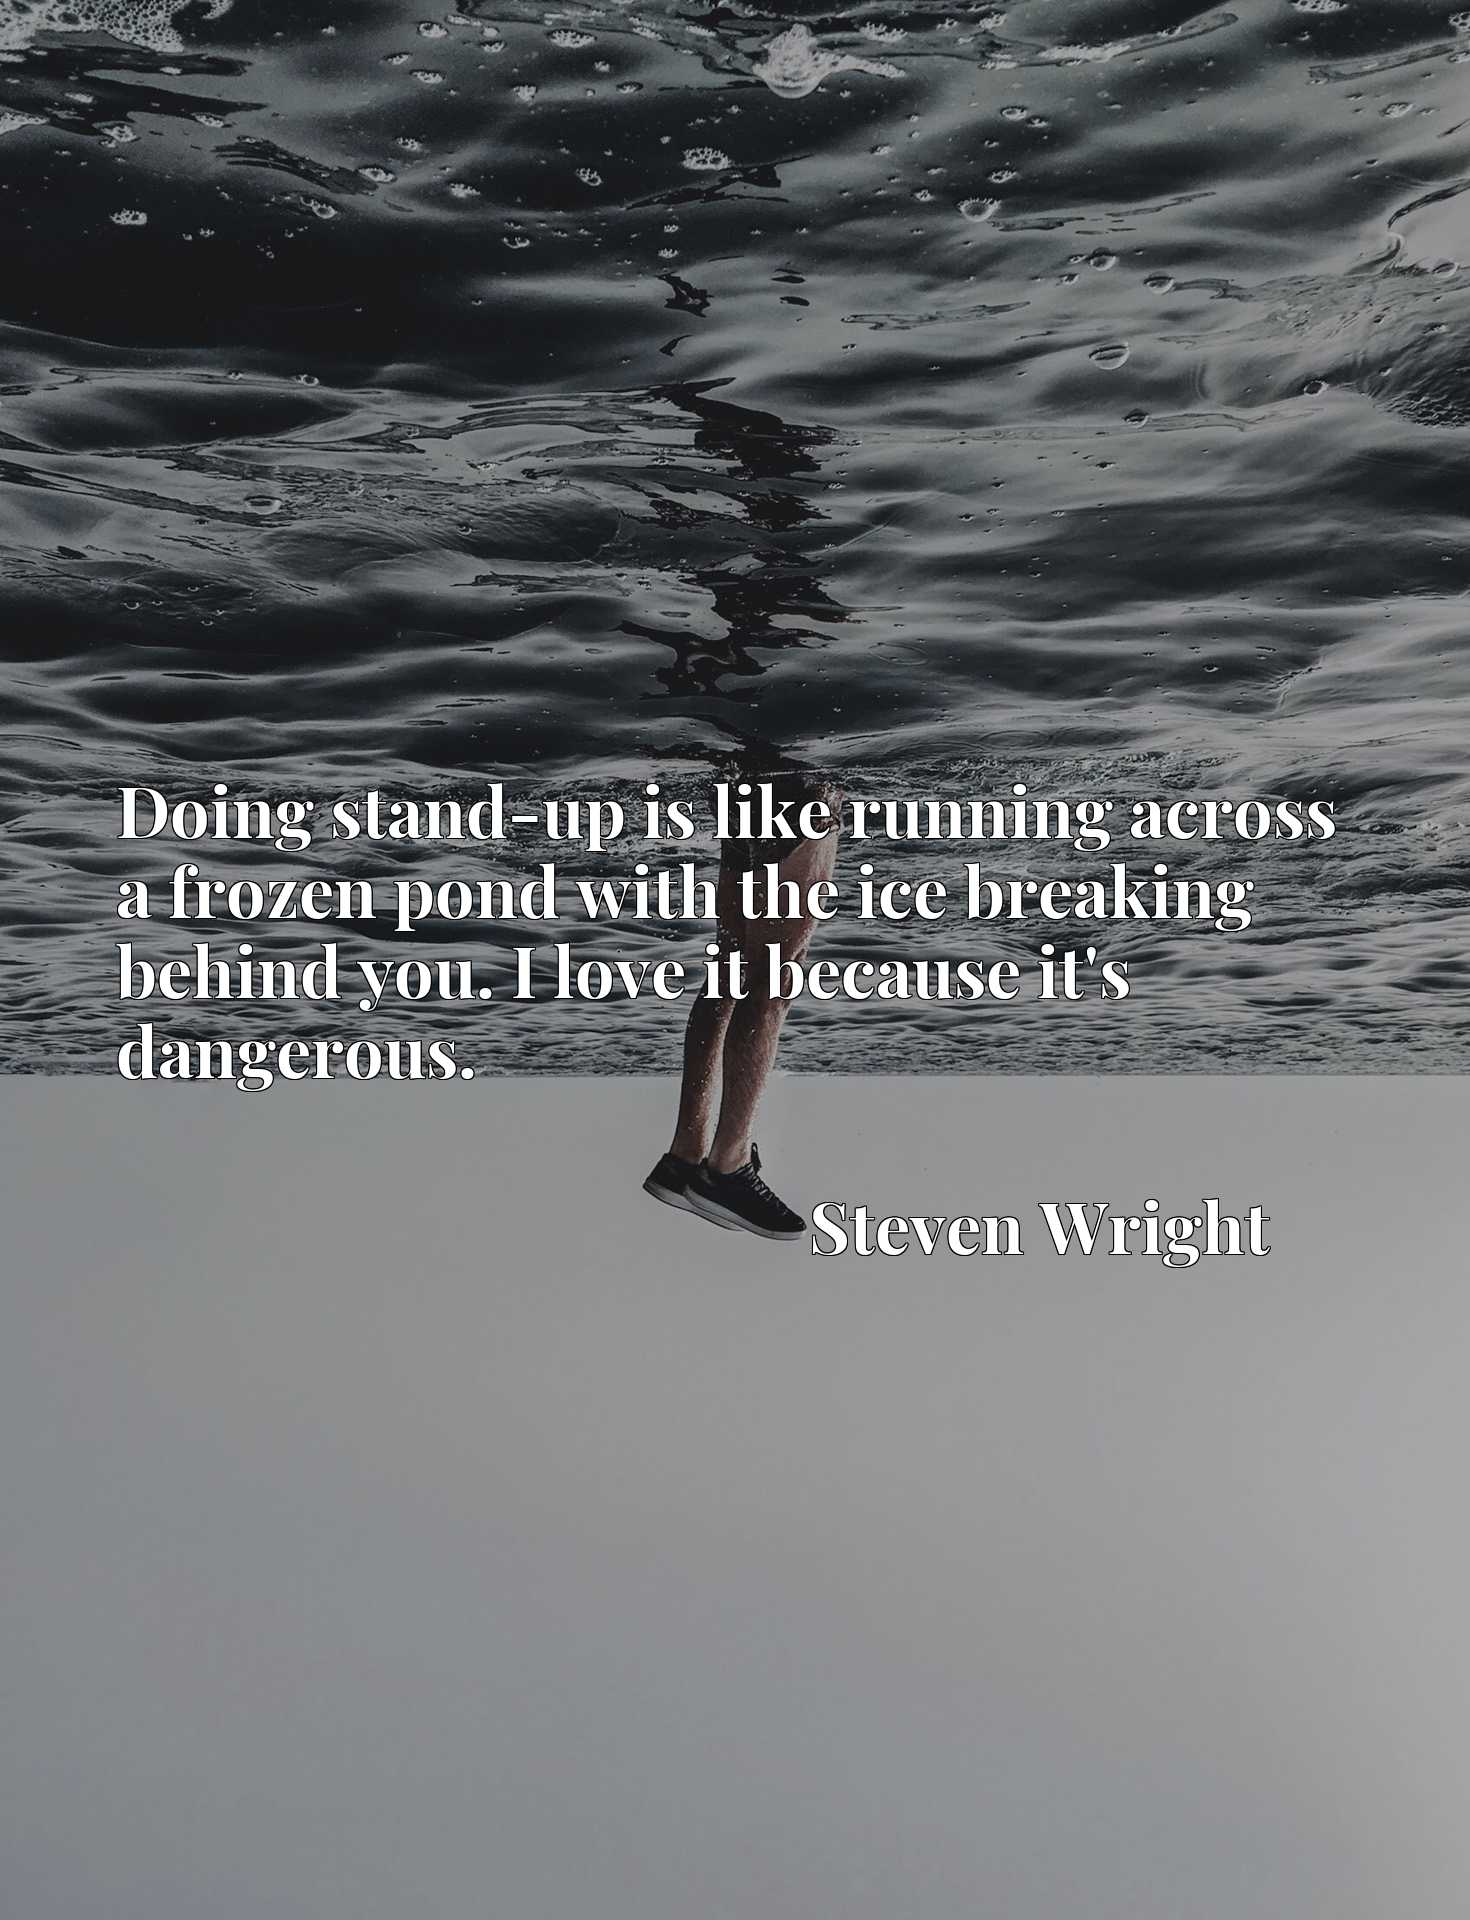 Quote Picture :Doing stand-up is like running across a frozen pond with the ice breaking behind you. I love it because it's dangerous.